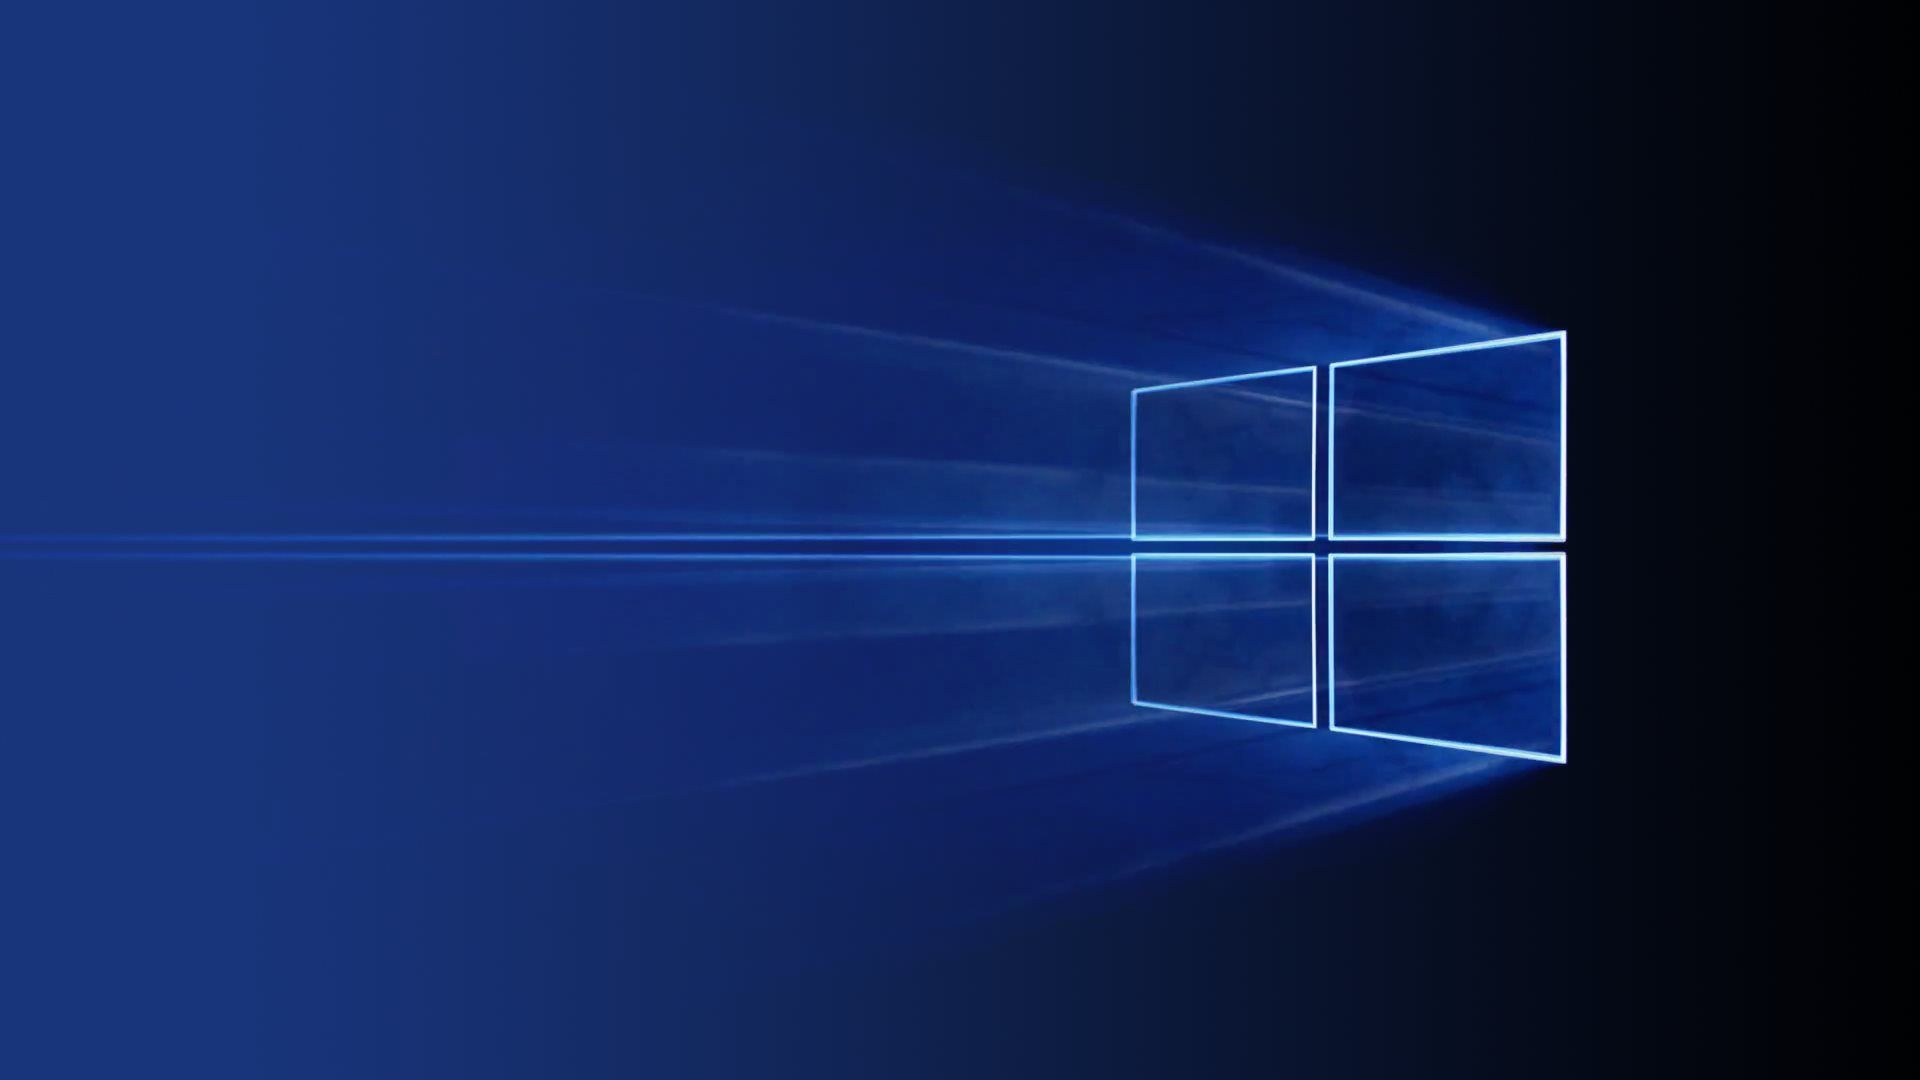 Microsoft Wallpapers HD Desktop Backgrounds Images and Pictures 1920x1080